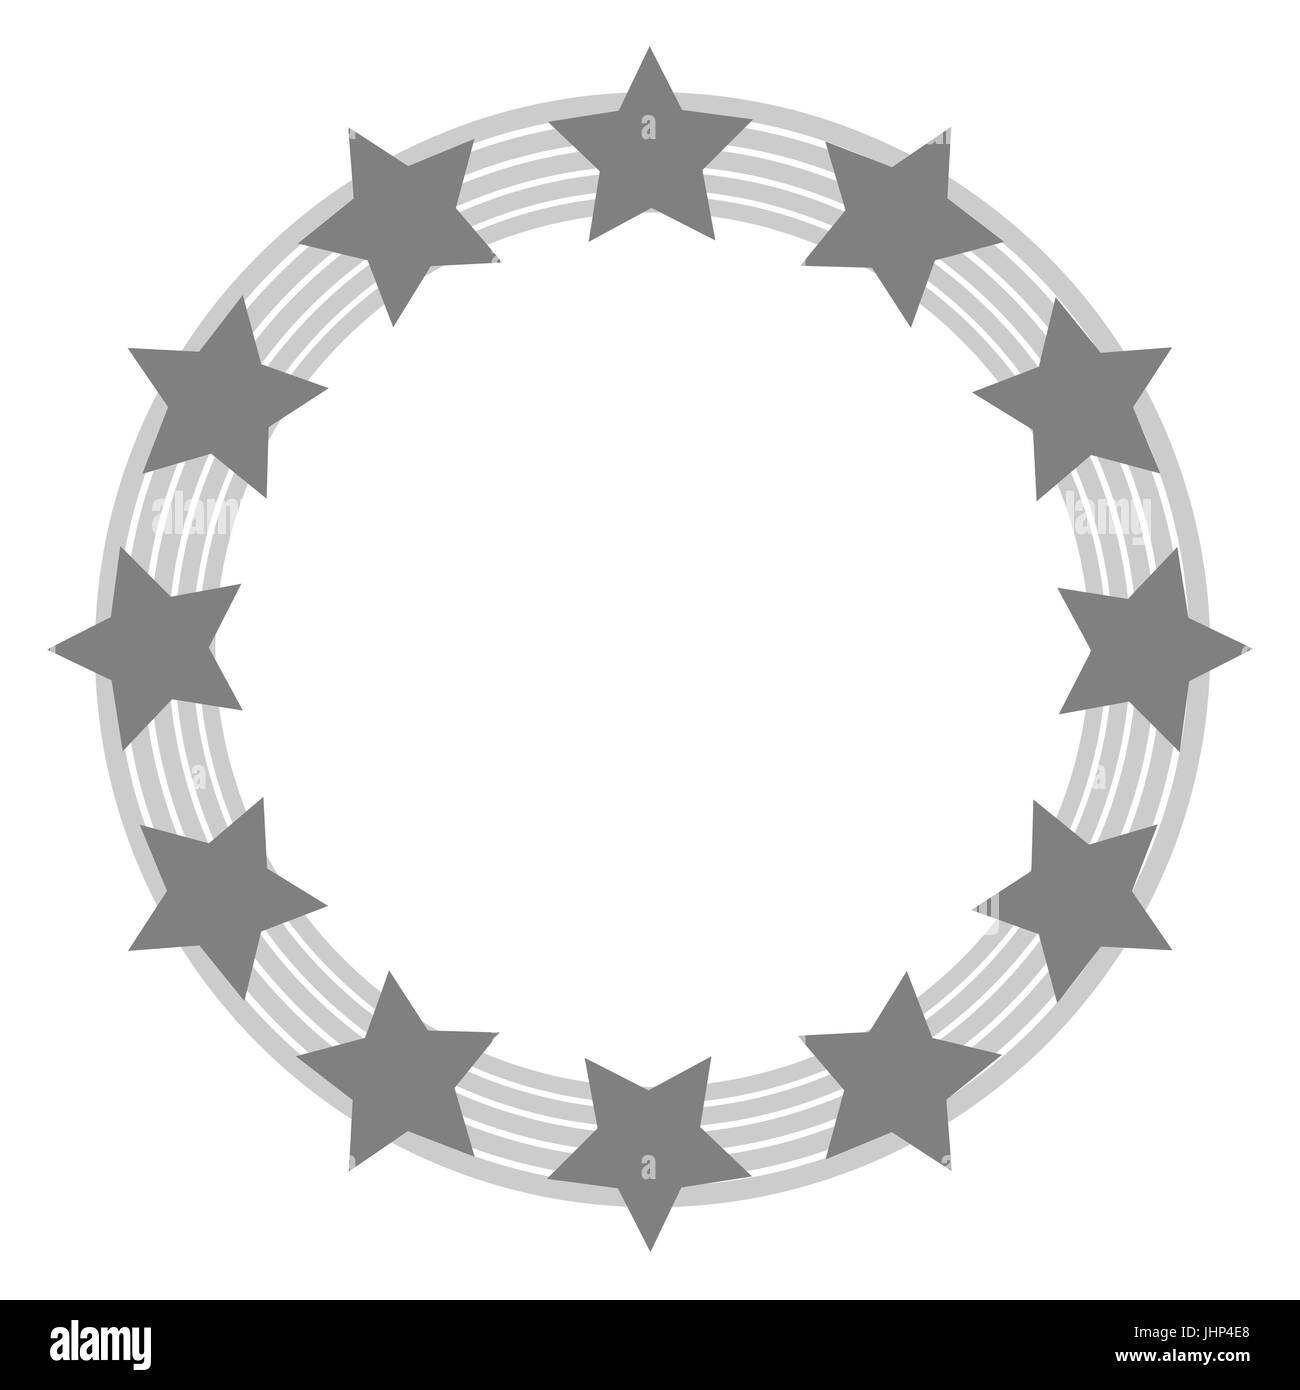 European Union symbol in grey tones with transparent middle - Stock Image